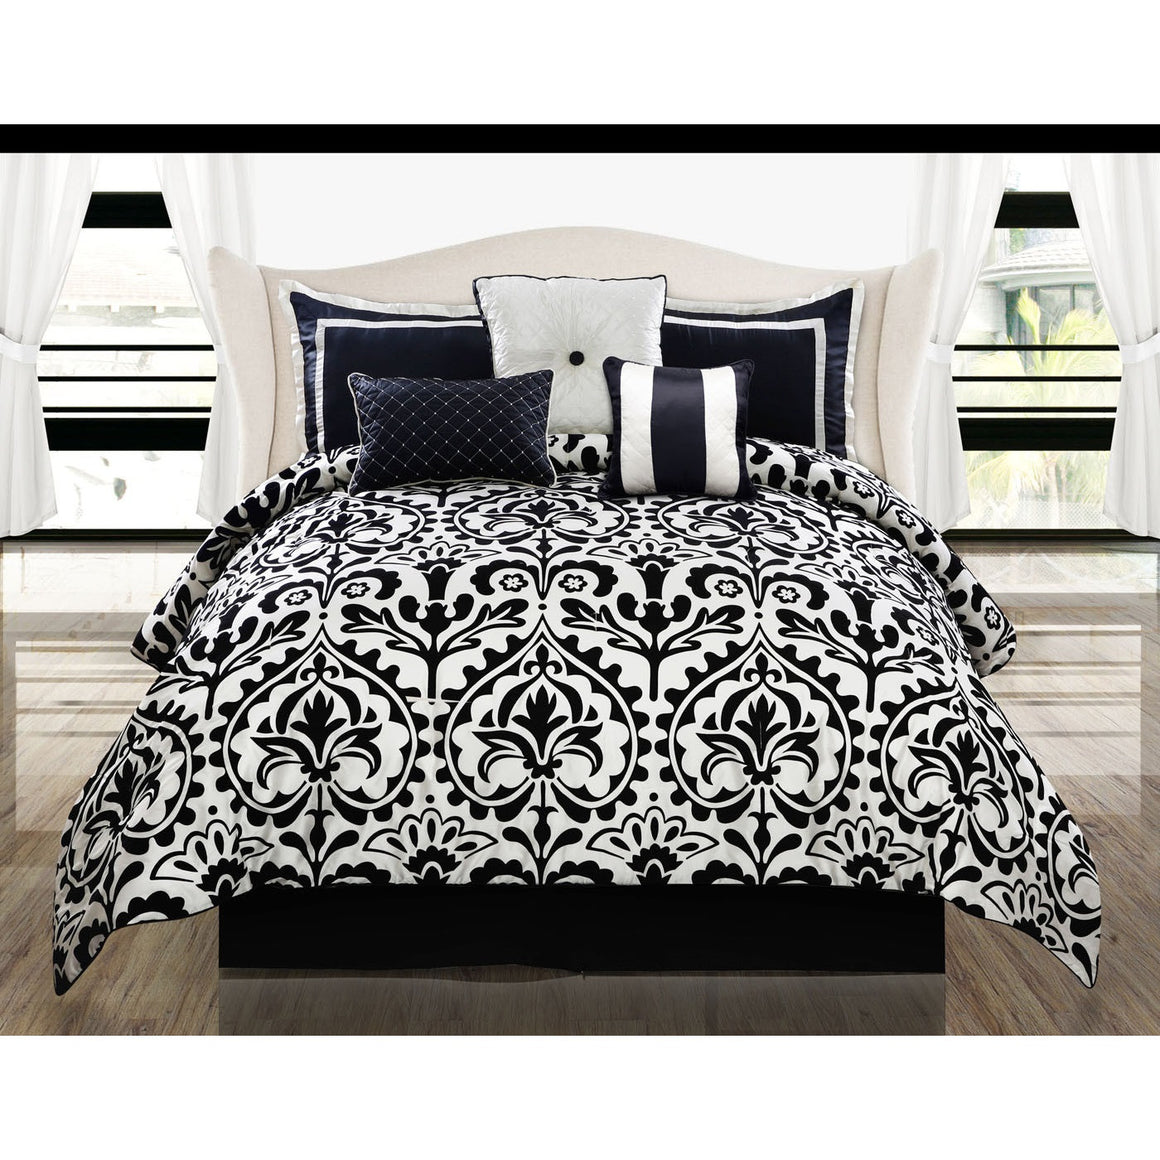 Concord Medallion Comforter Bed Set